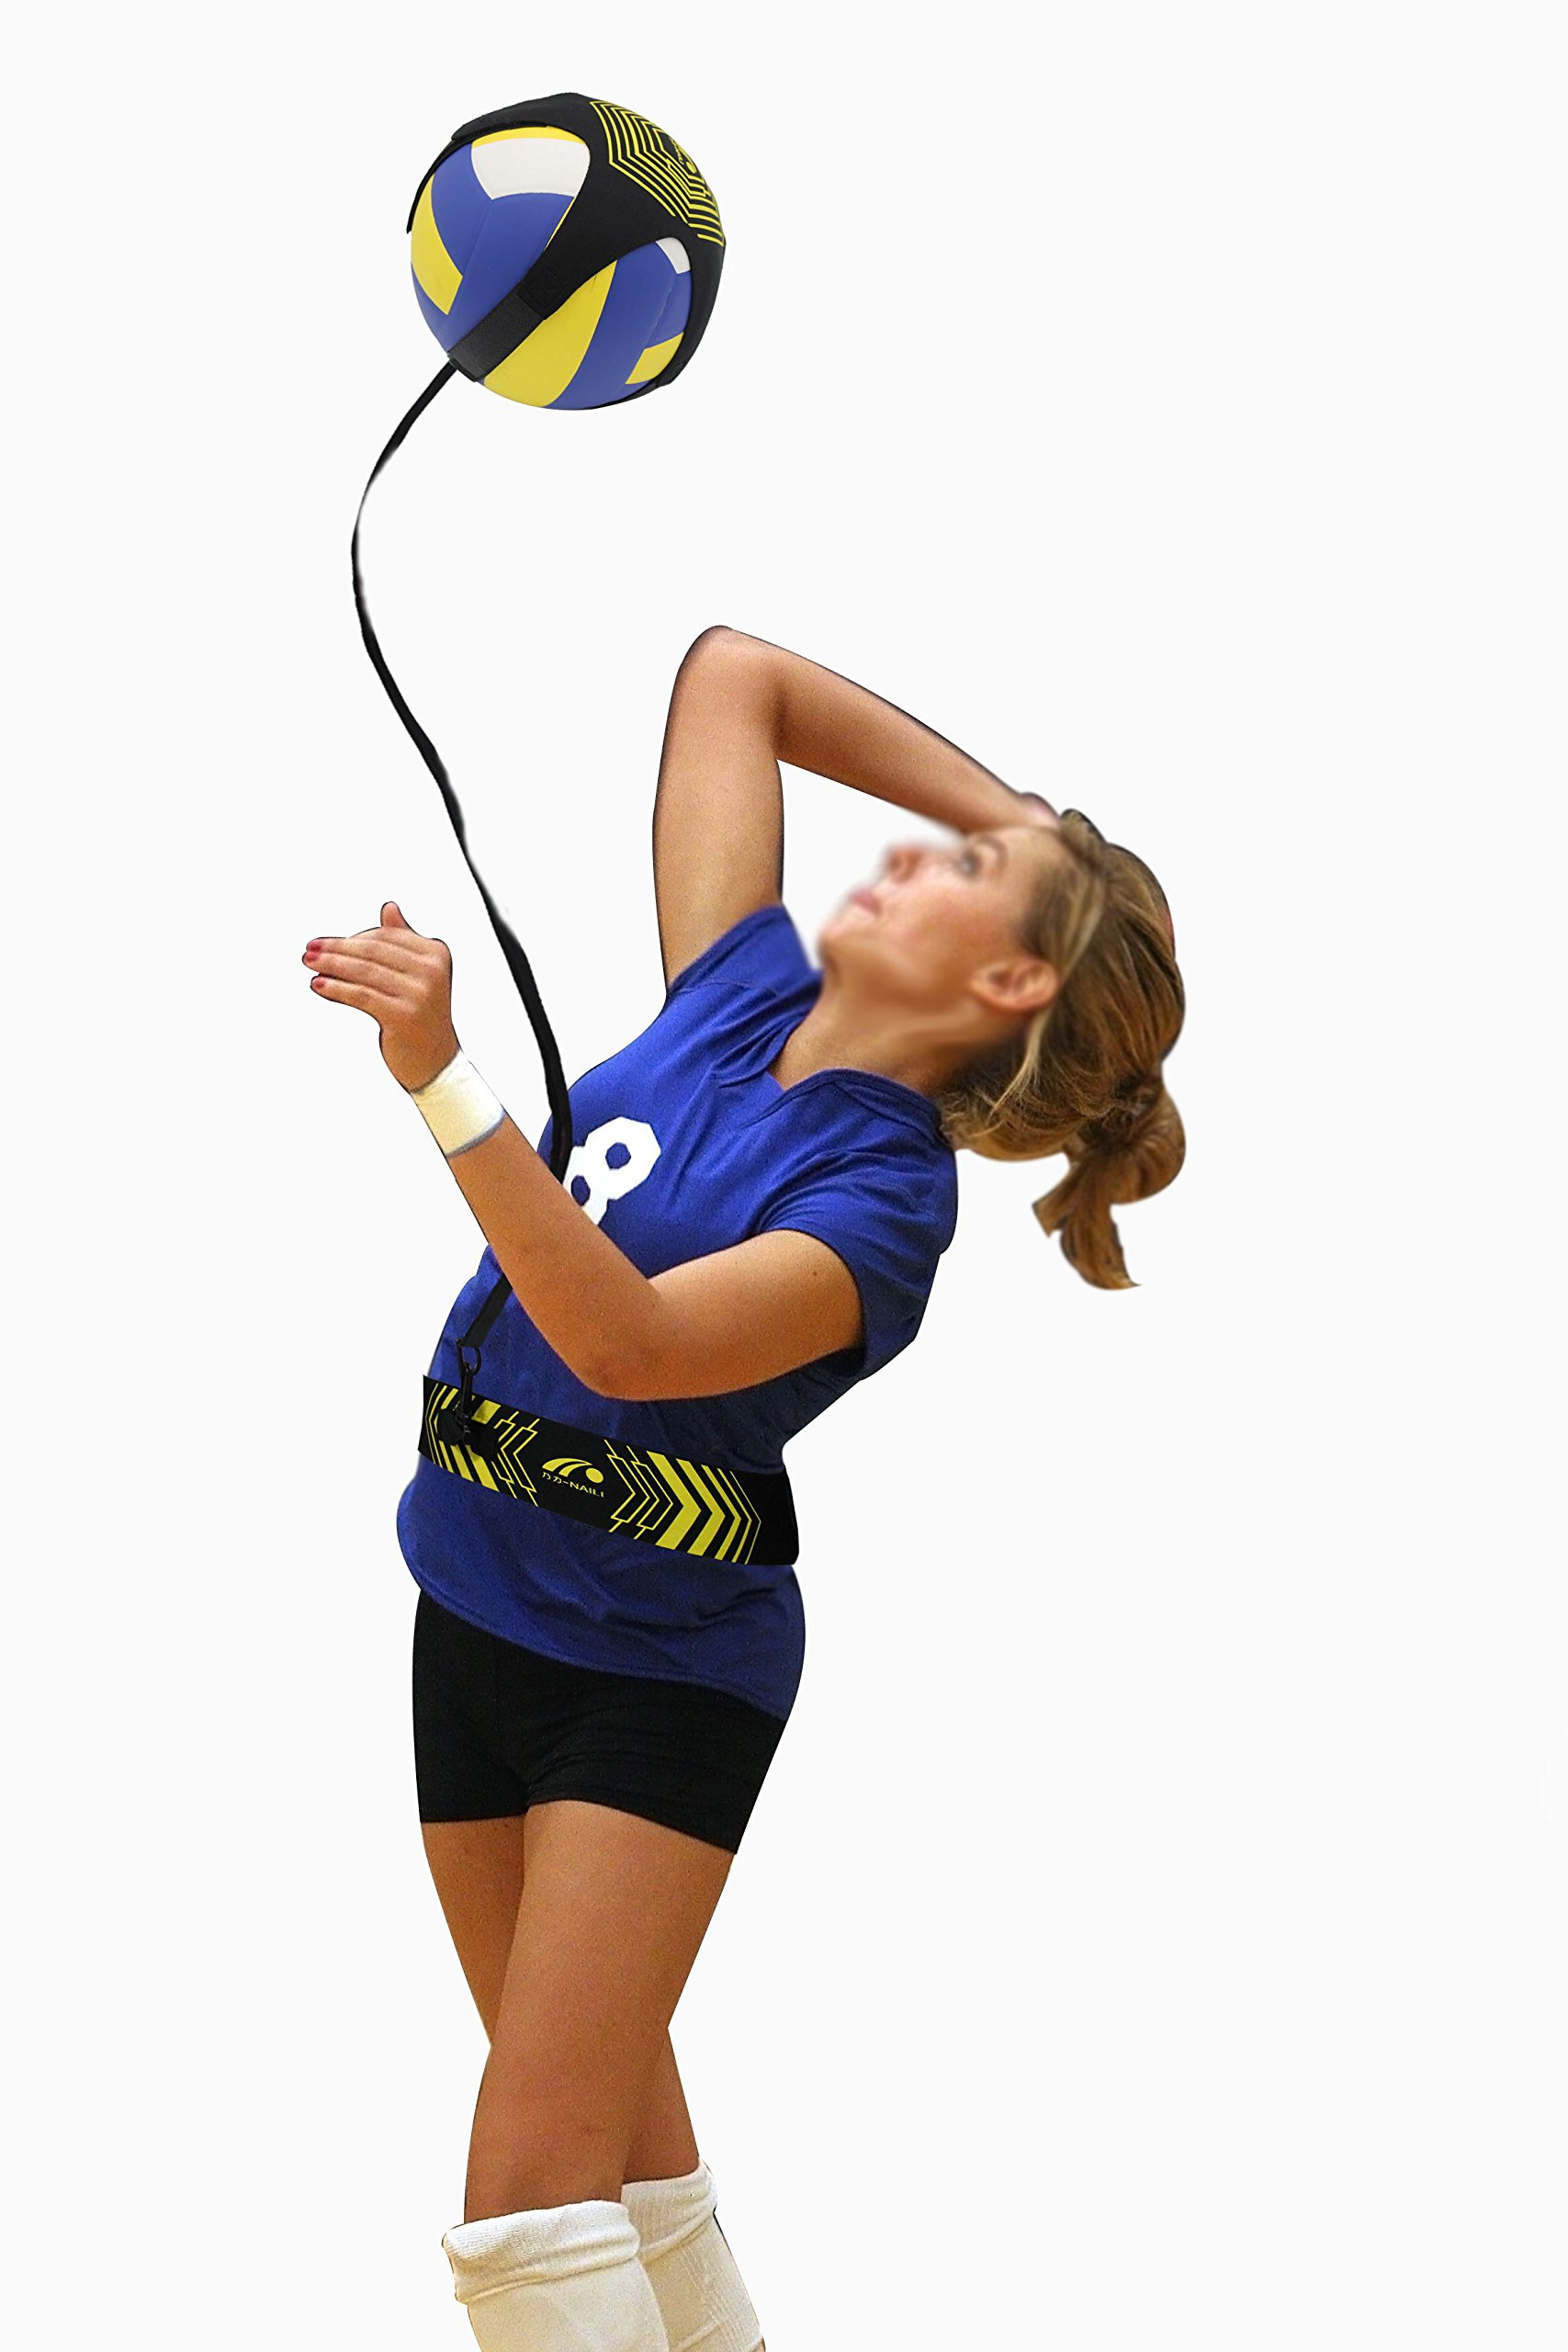 MissW Volleyball Training Equipment Aid : Great Trainer for Solo Practice of Serving tosses and arm Swings